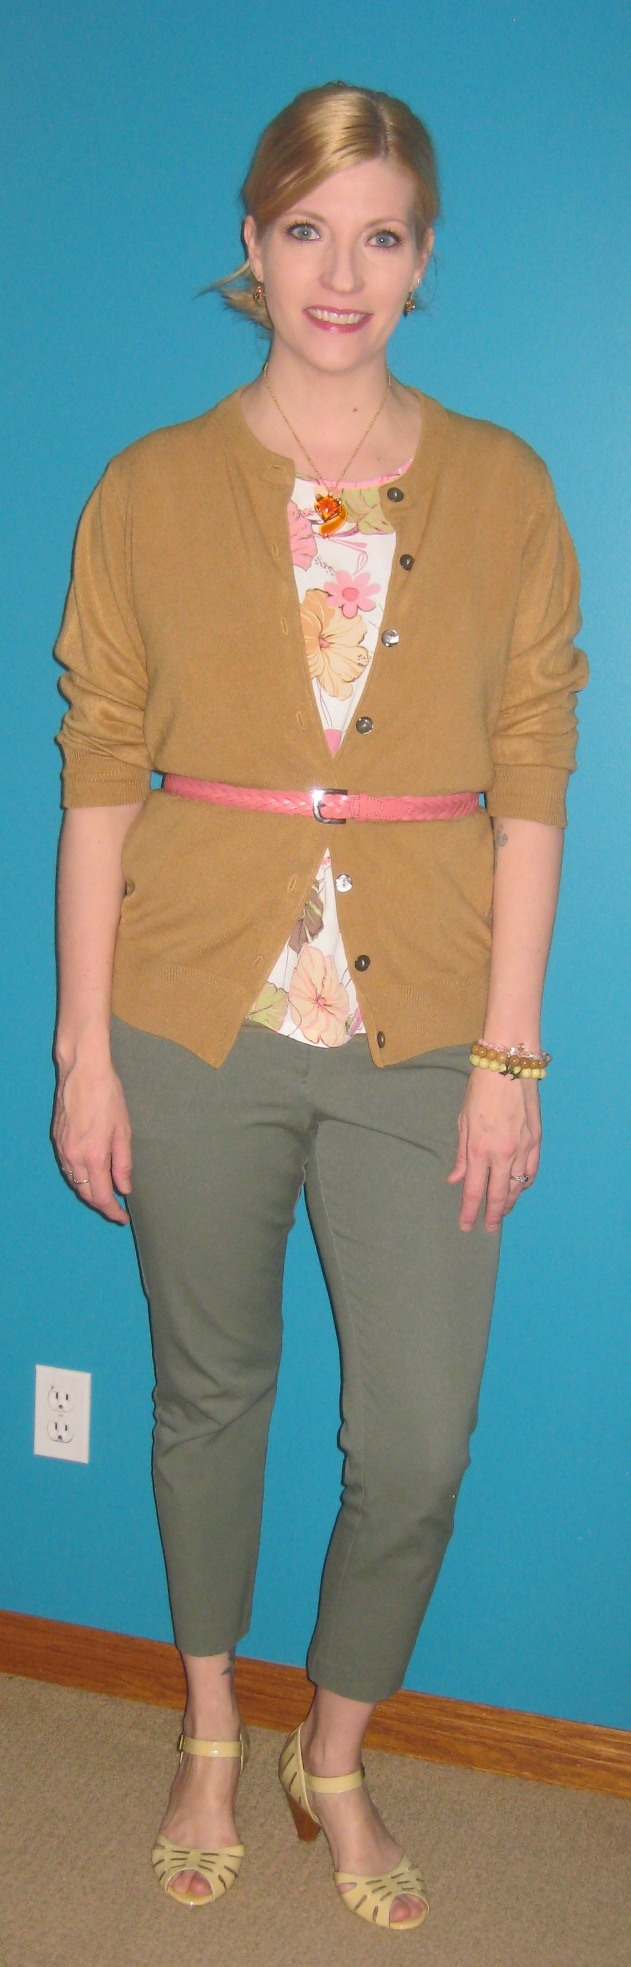 Core item #6 sage pants $5, core item #8 floral blouse $2, camel cardi extra $3.50 plus Miz Mooz shoes and braided leather belt.